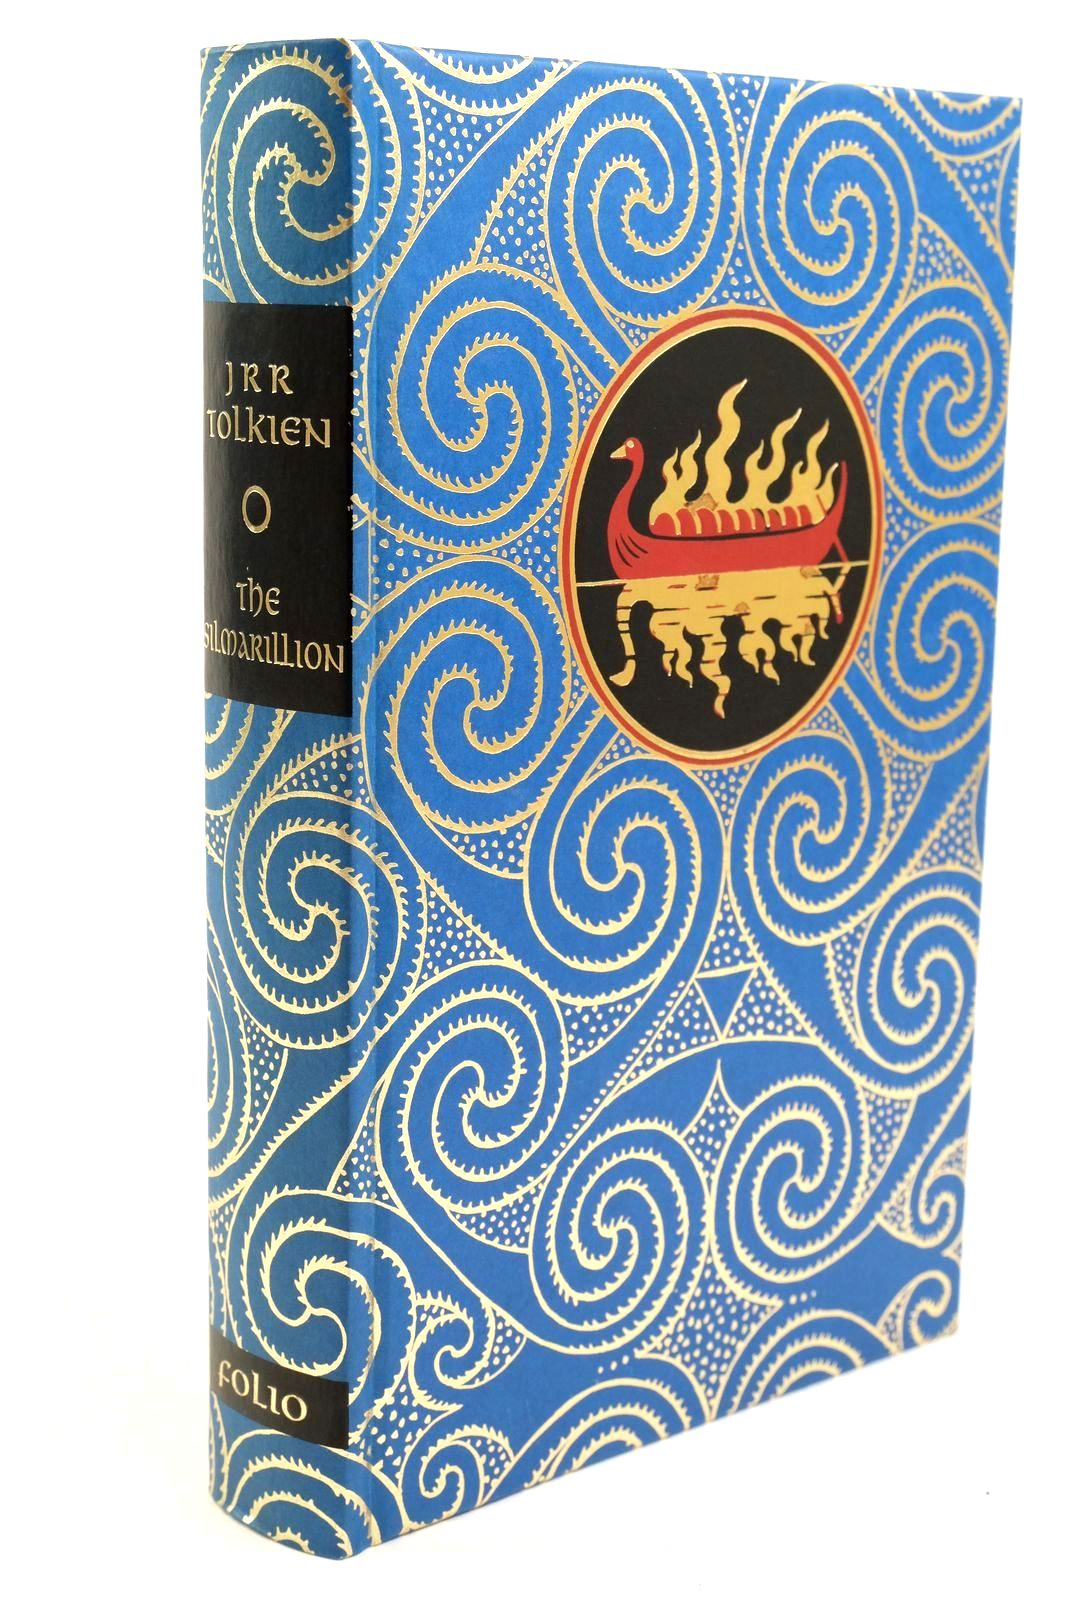 Photo of THE SILMARILLION written by Tolkien, J.R.R. Tolkien, Christopher illustrated by Mosley, Francis published by Folio Society (STOCK CODE: 1320921)  for sale by Stella & Rose's Books